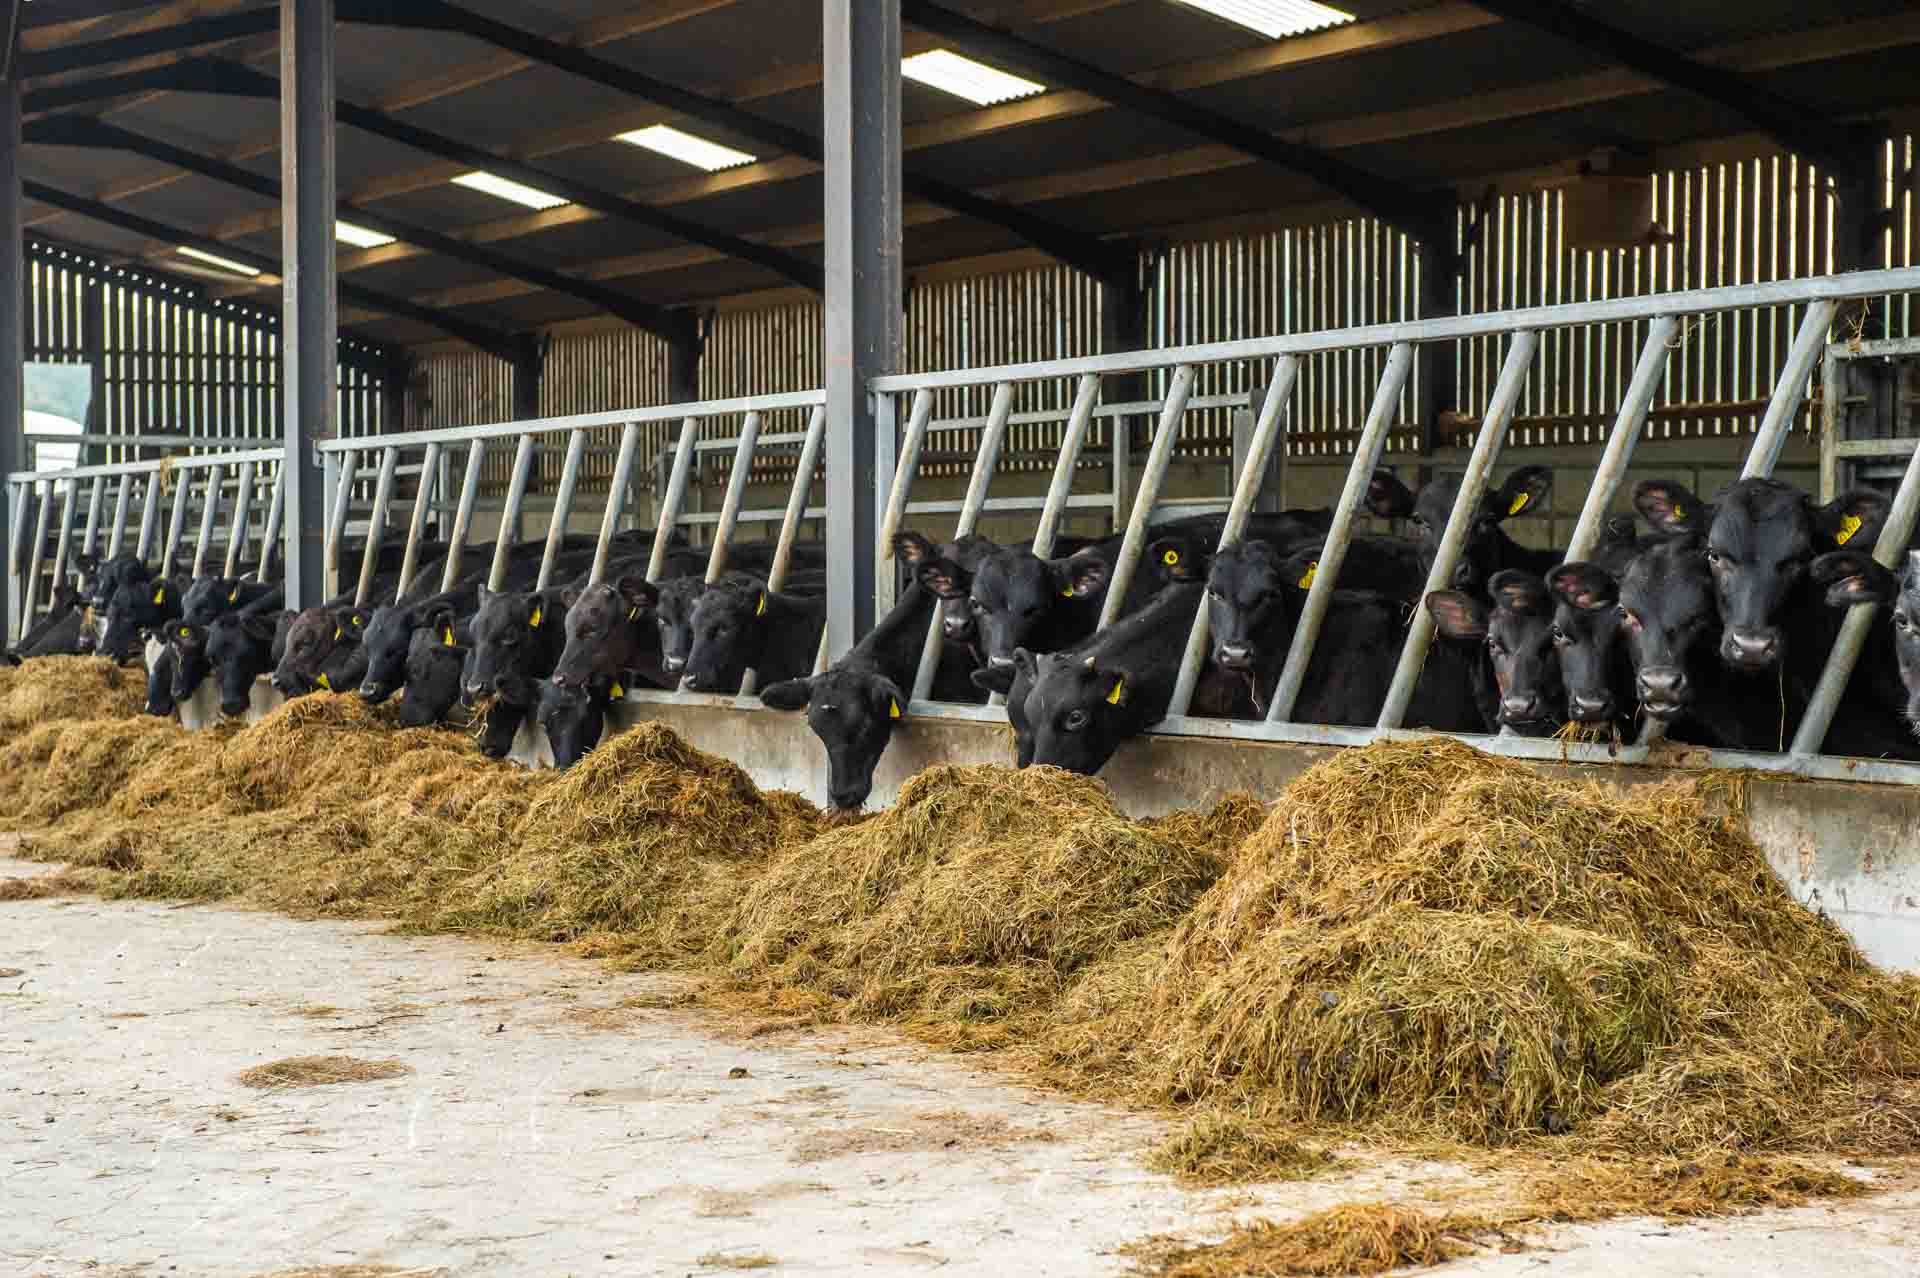 4 month old Angus-Friesian cross calves, now eating silage